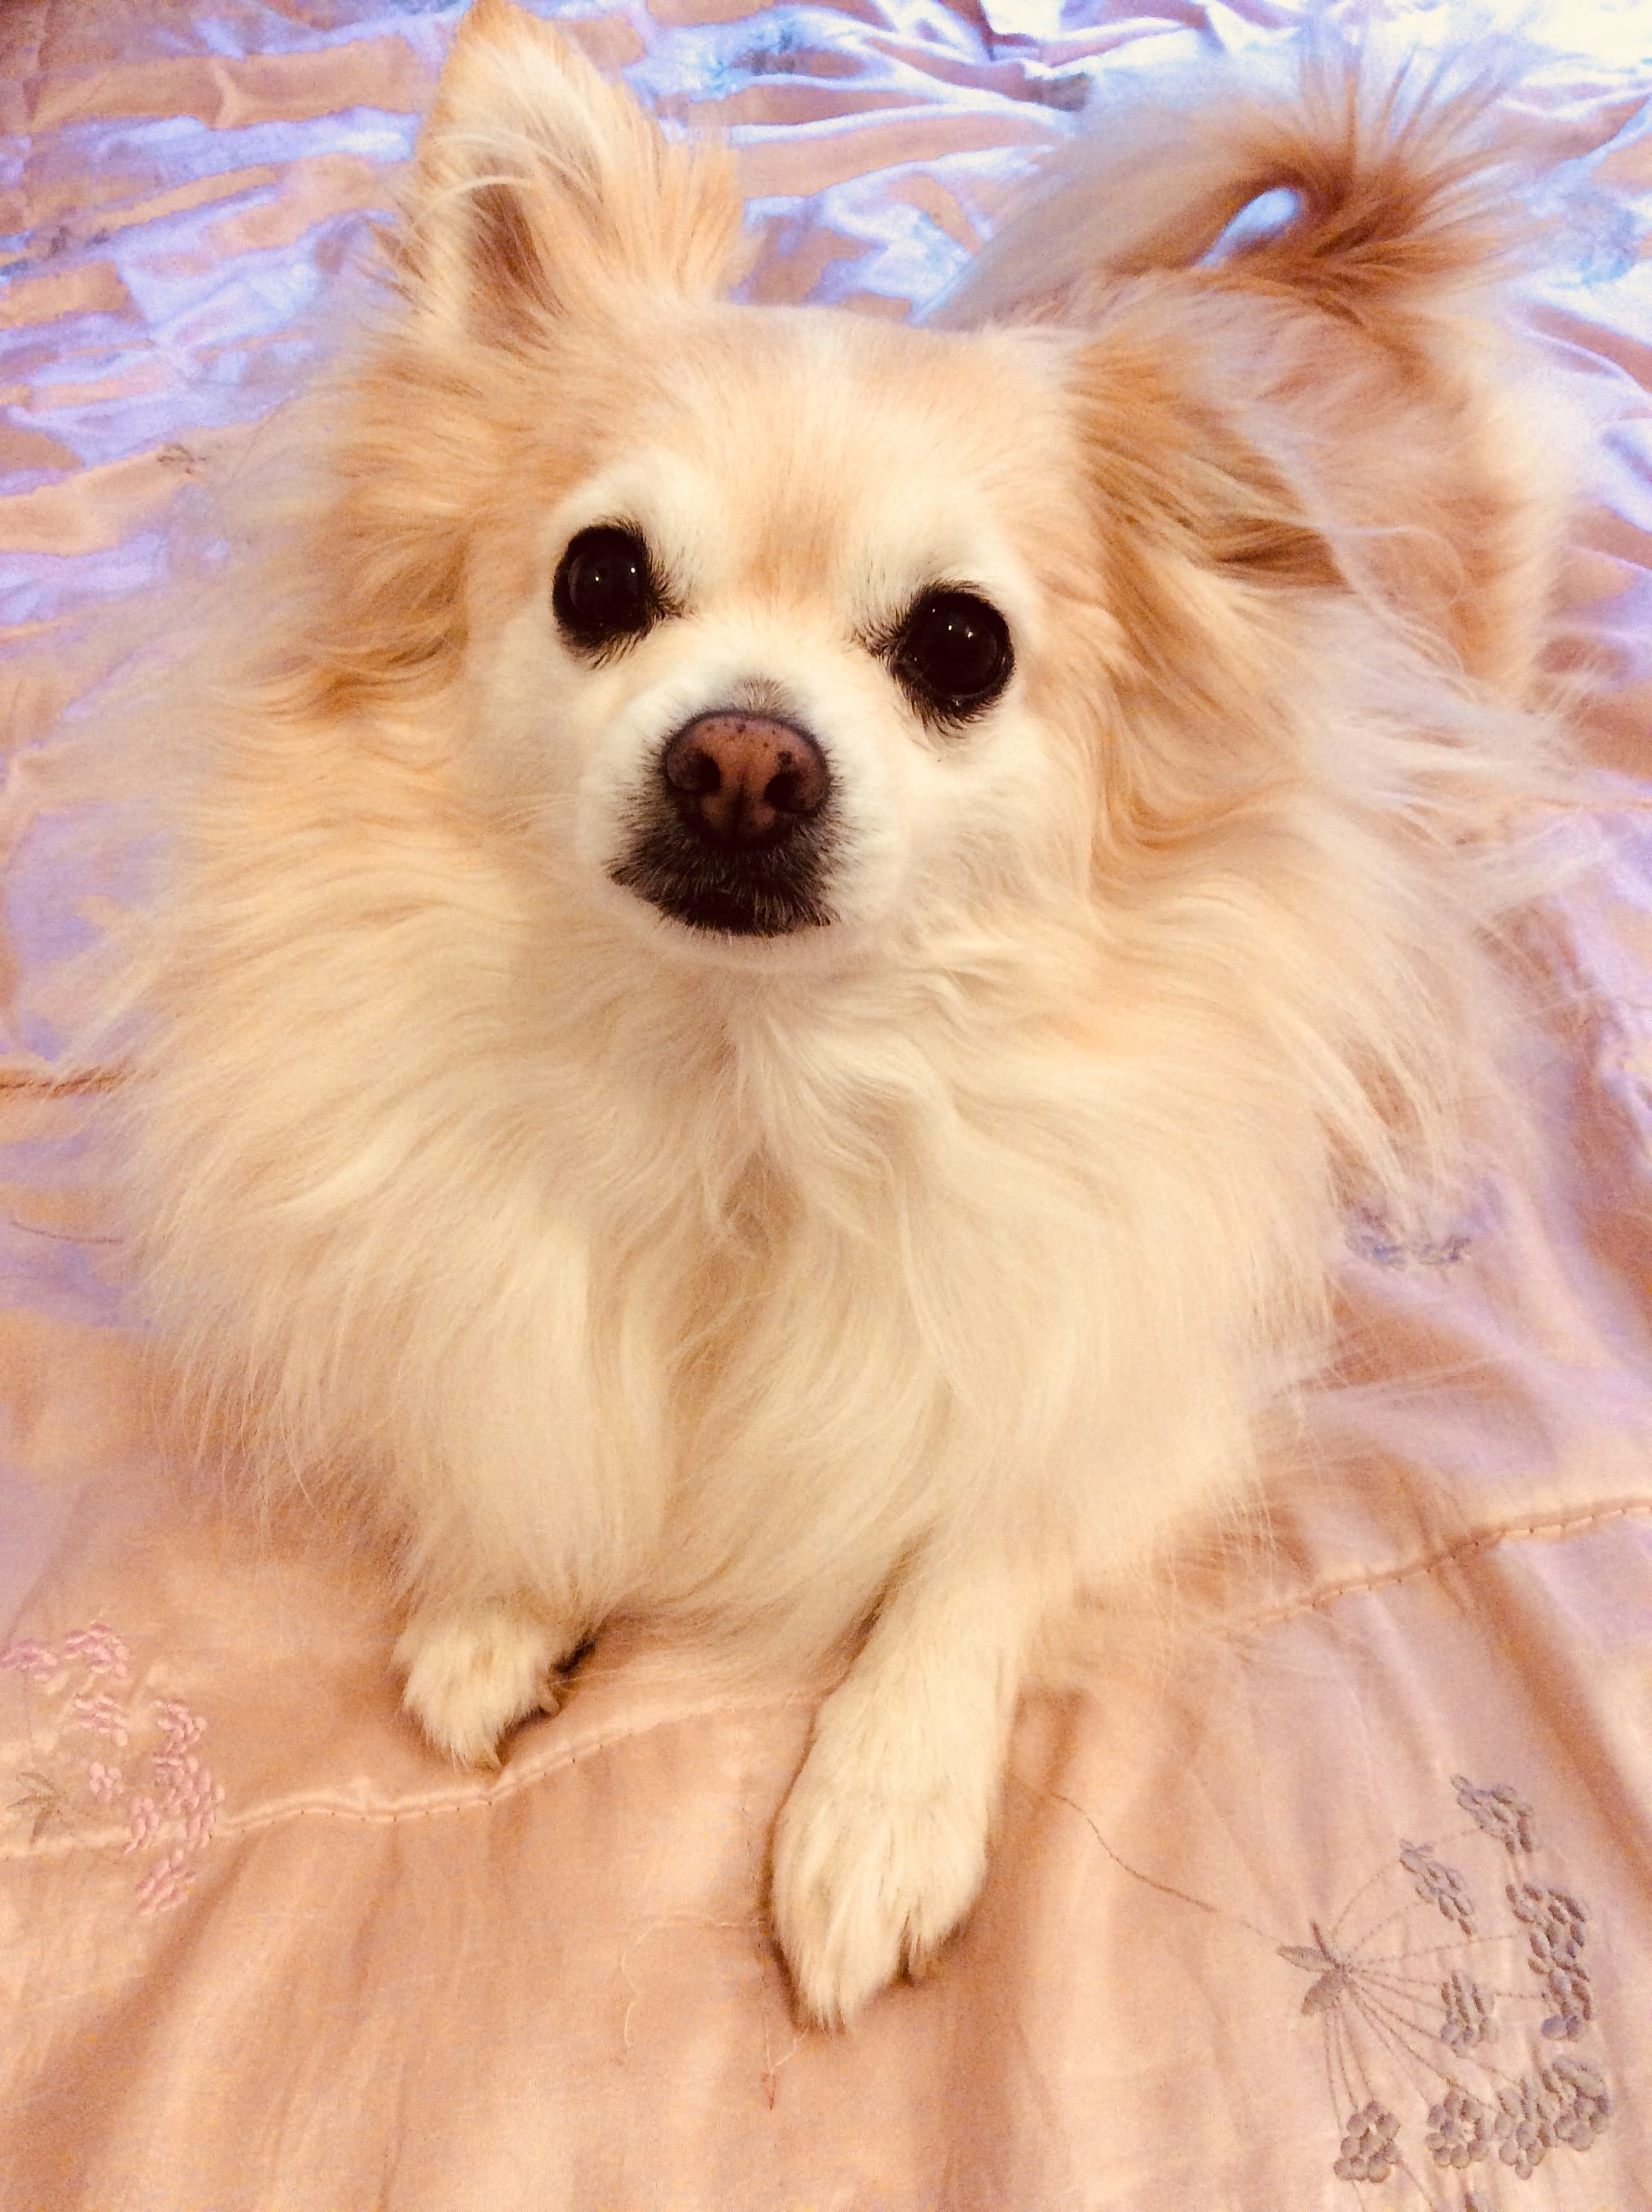 Golden Pomchi Chihuahua Pomeranian Mix Best Dogs Ever Huge Personality Great With Dogs And Kids Not So Great Pomeranian Chihuahua Mix Dogs And Kids Dogs